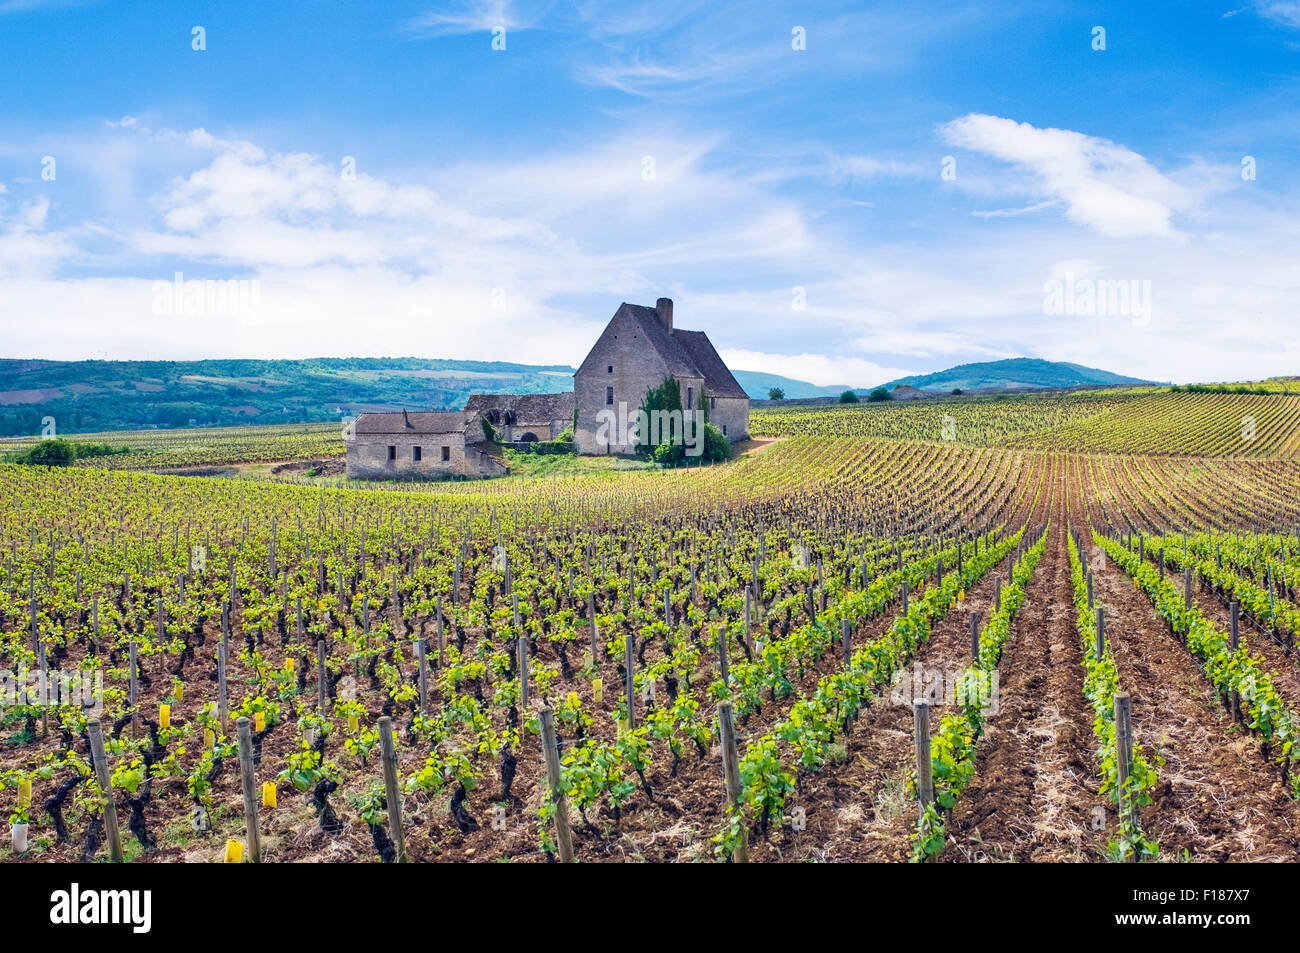 The Abbaye de Morgeot and vineyards in Chassagne-Montrachet in the Cote de Beaune, Burgundy, France - Stock Image